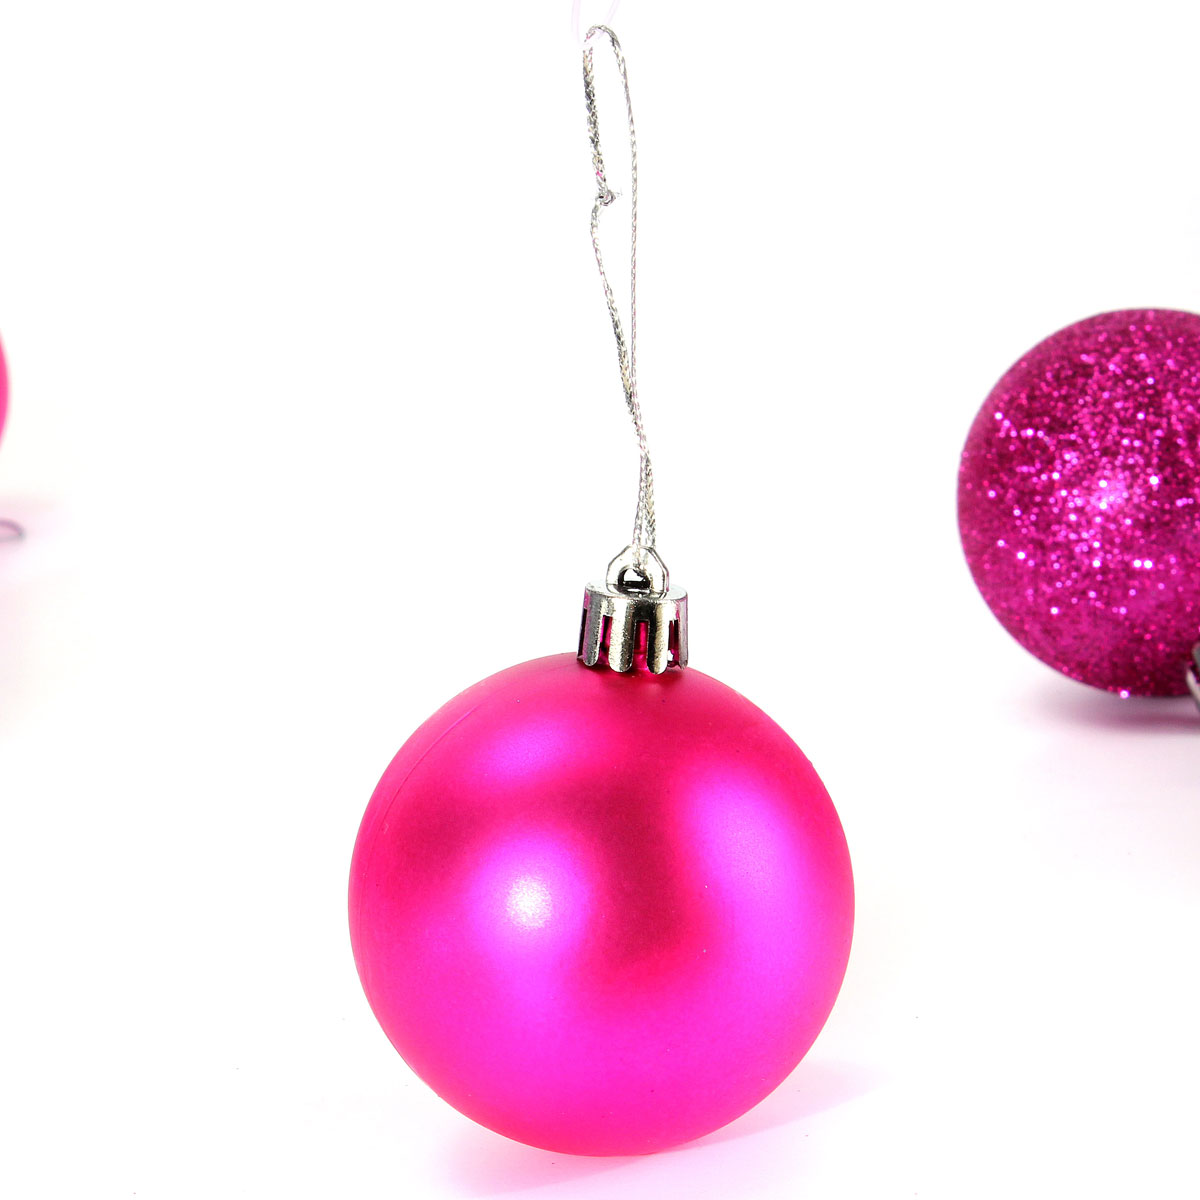 30 40 60mm new christmas tree decoration bauble ball for Crystal baubles christmas